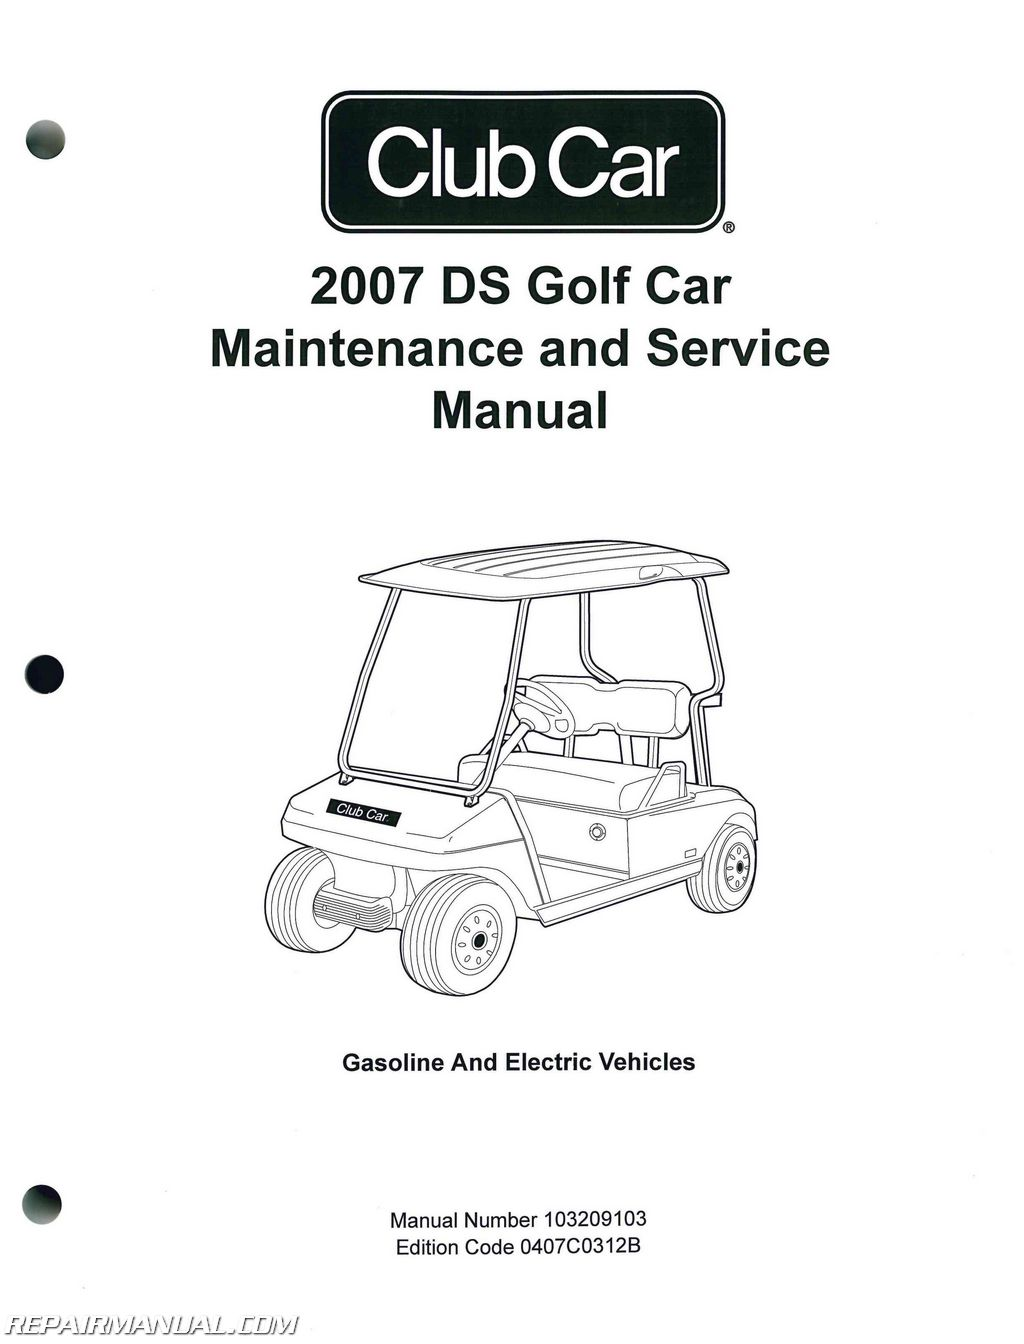 36v club car wiring diagram msd 6al 6420 2007 ds golf gas and electric cart